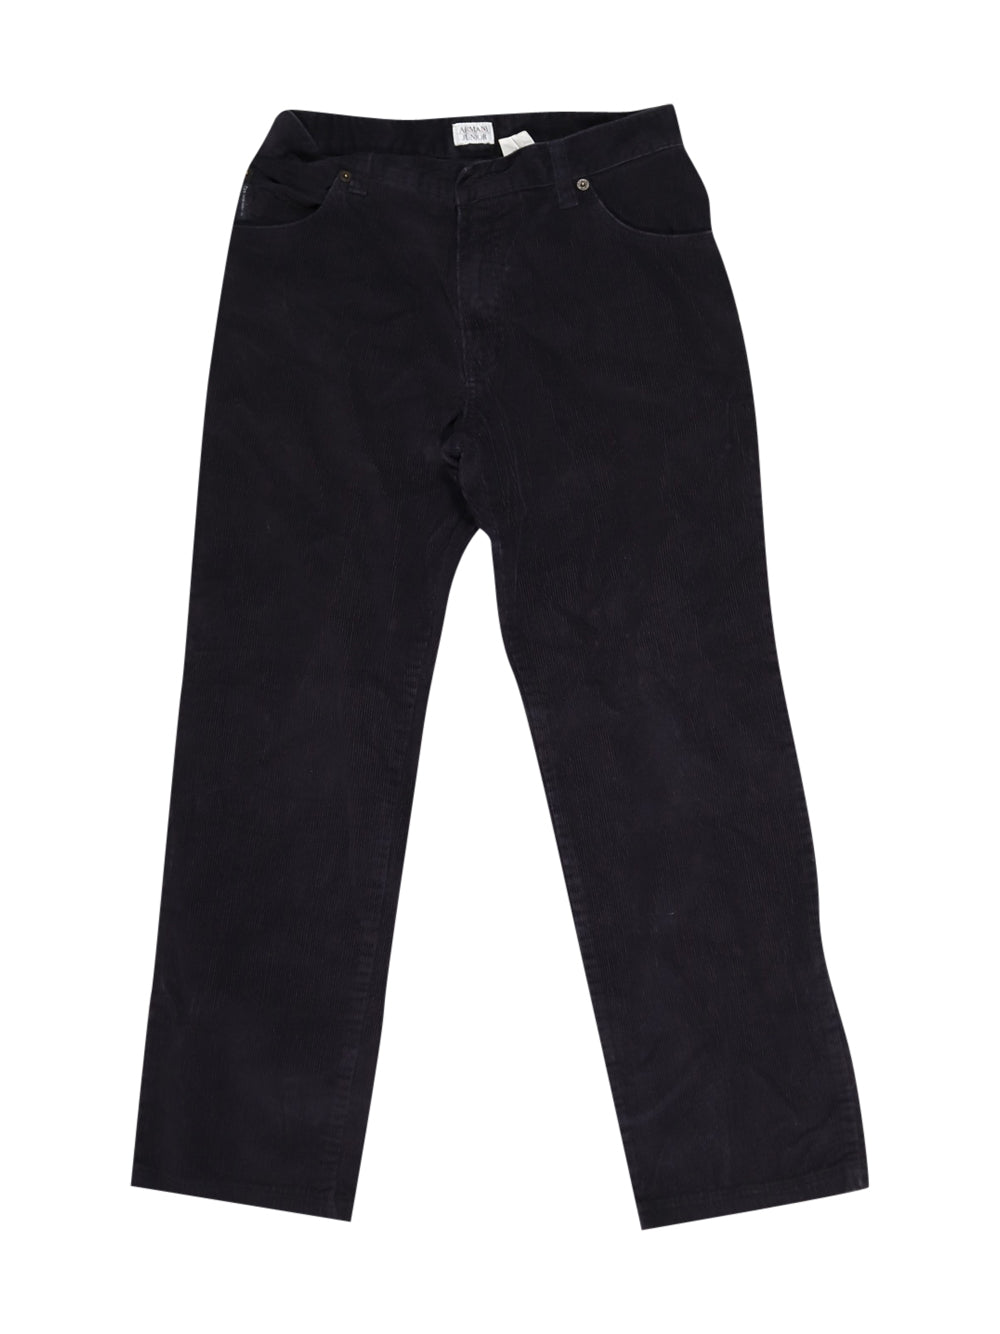 Front photo of Preloved Armani Black Girl's trousers - size 10-12 yrs